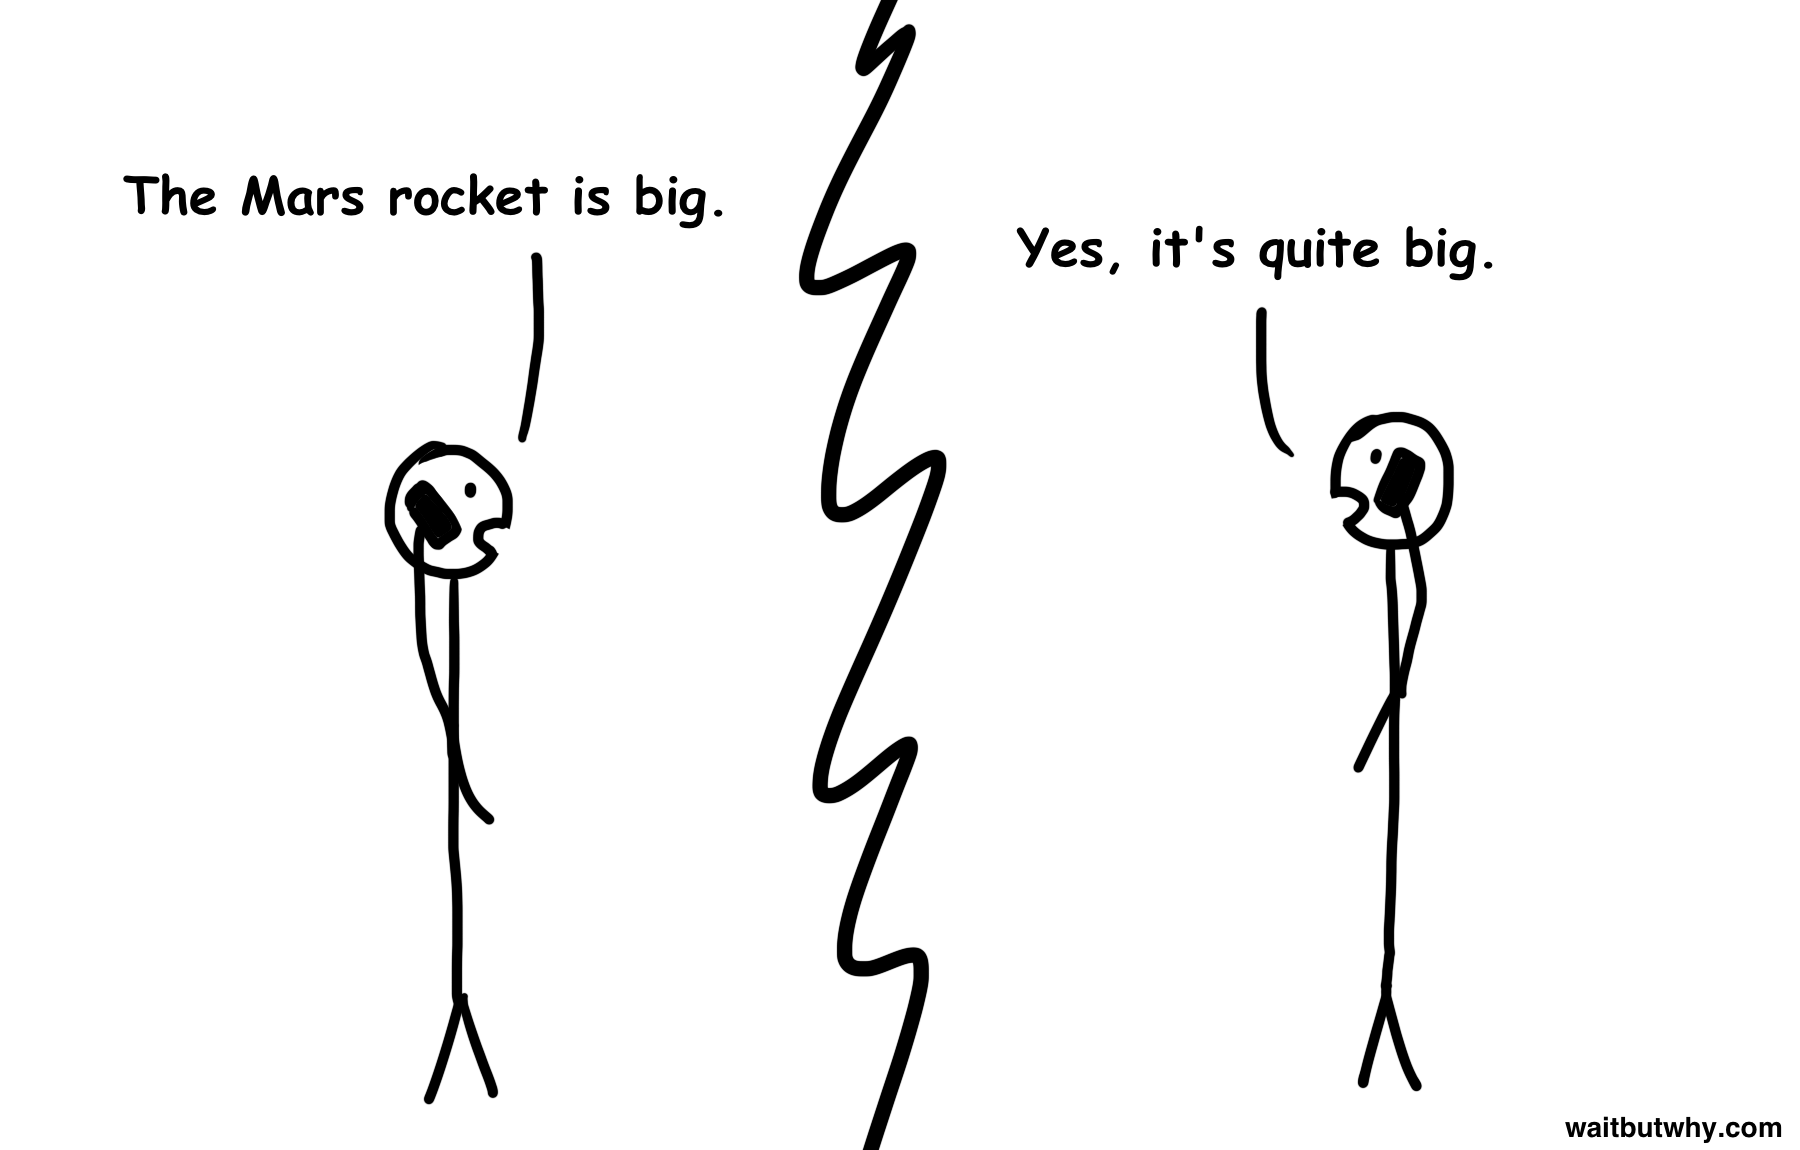 Tim: The Mars rocket is big. Elon: Yes, it's quite big.